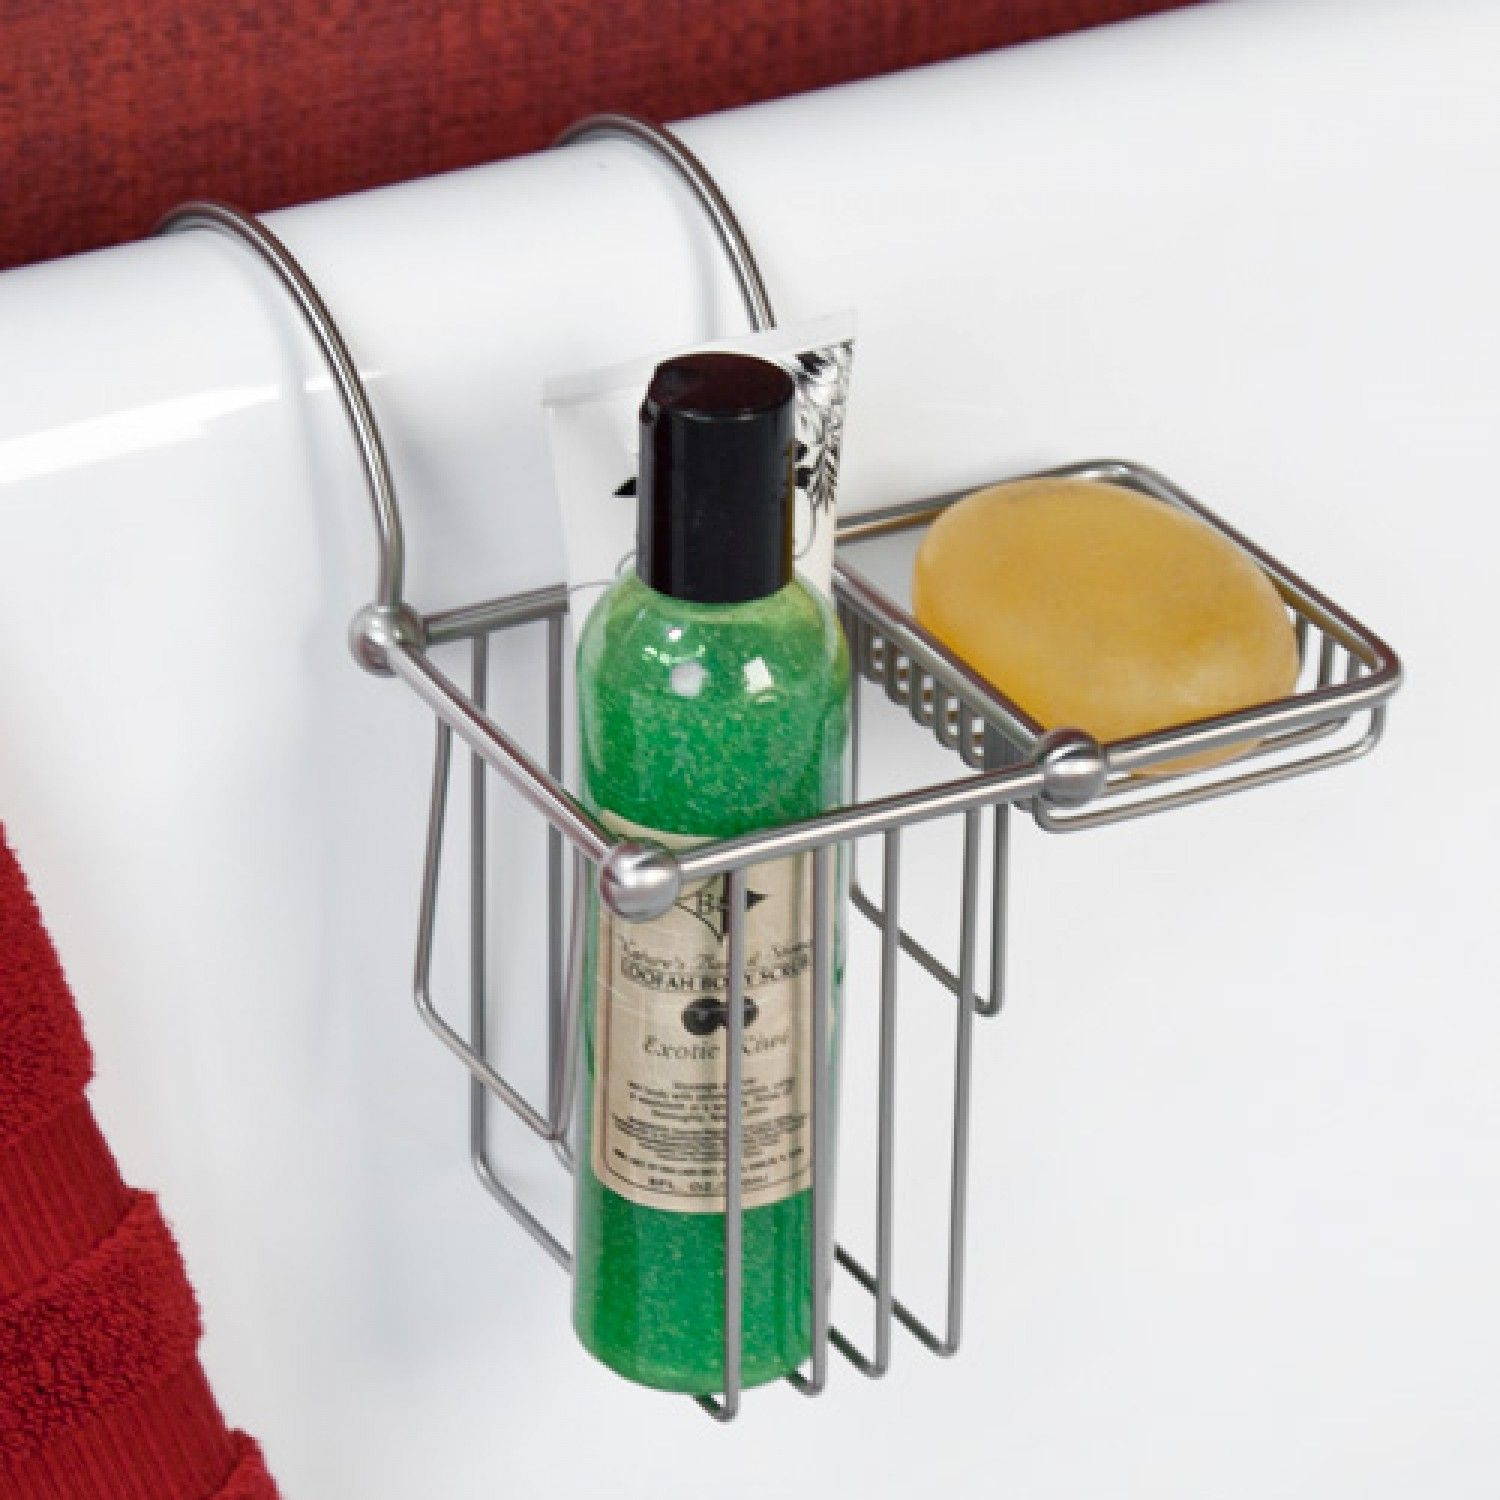 Over The Rim Shampoo Bottle And Soap Basket Accessories Over - Accessories for clawfoot tub